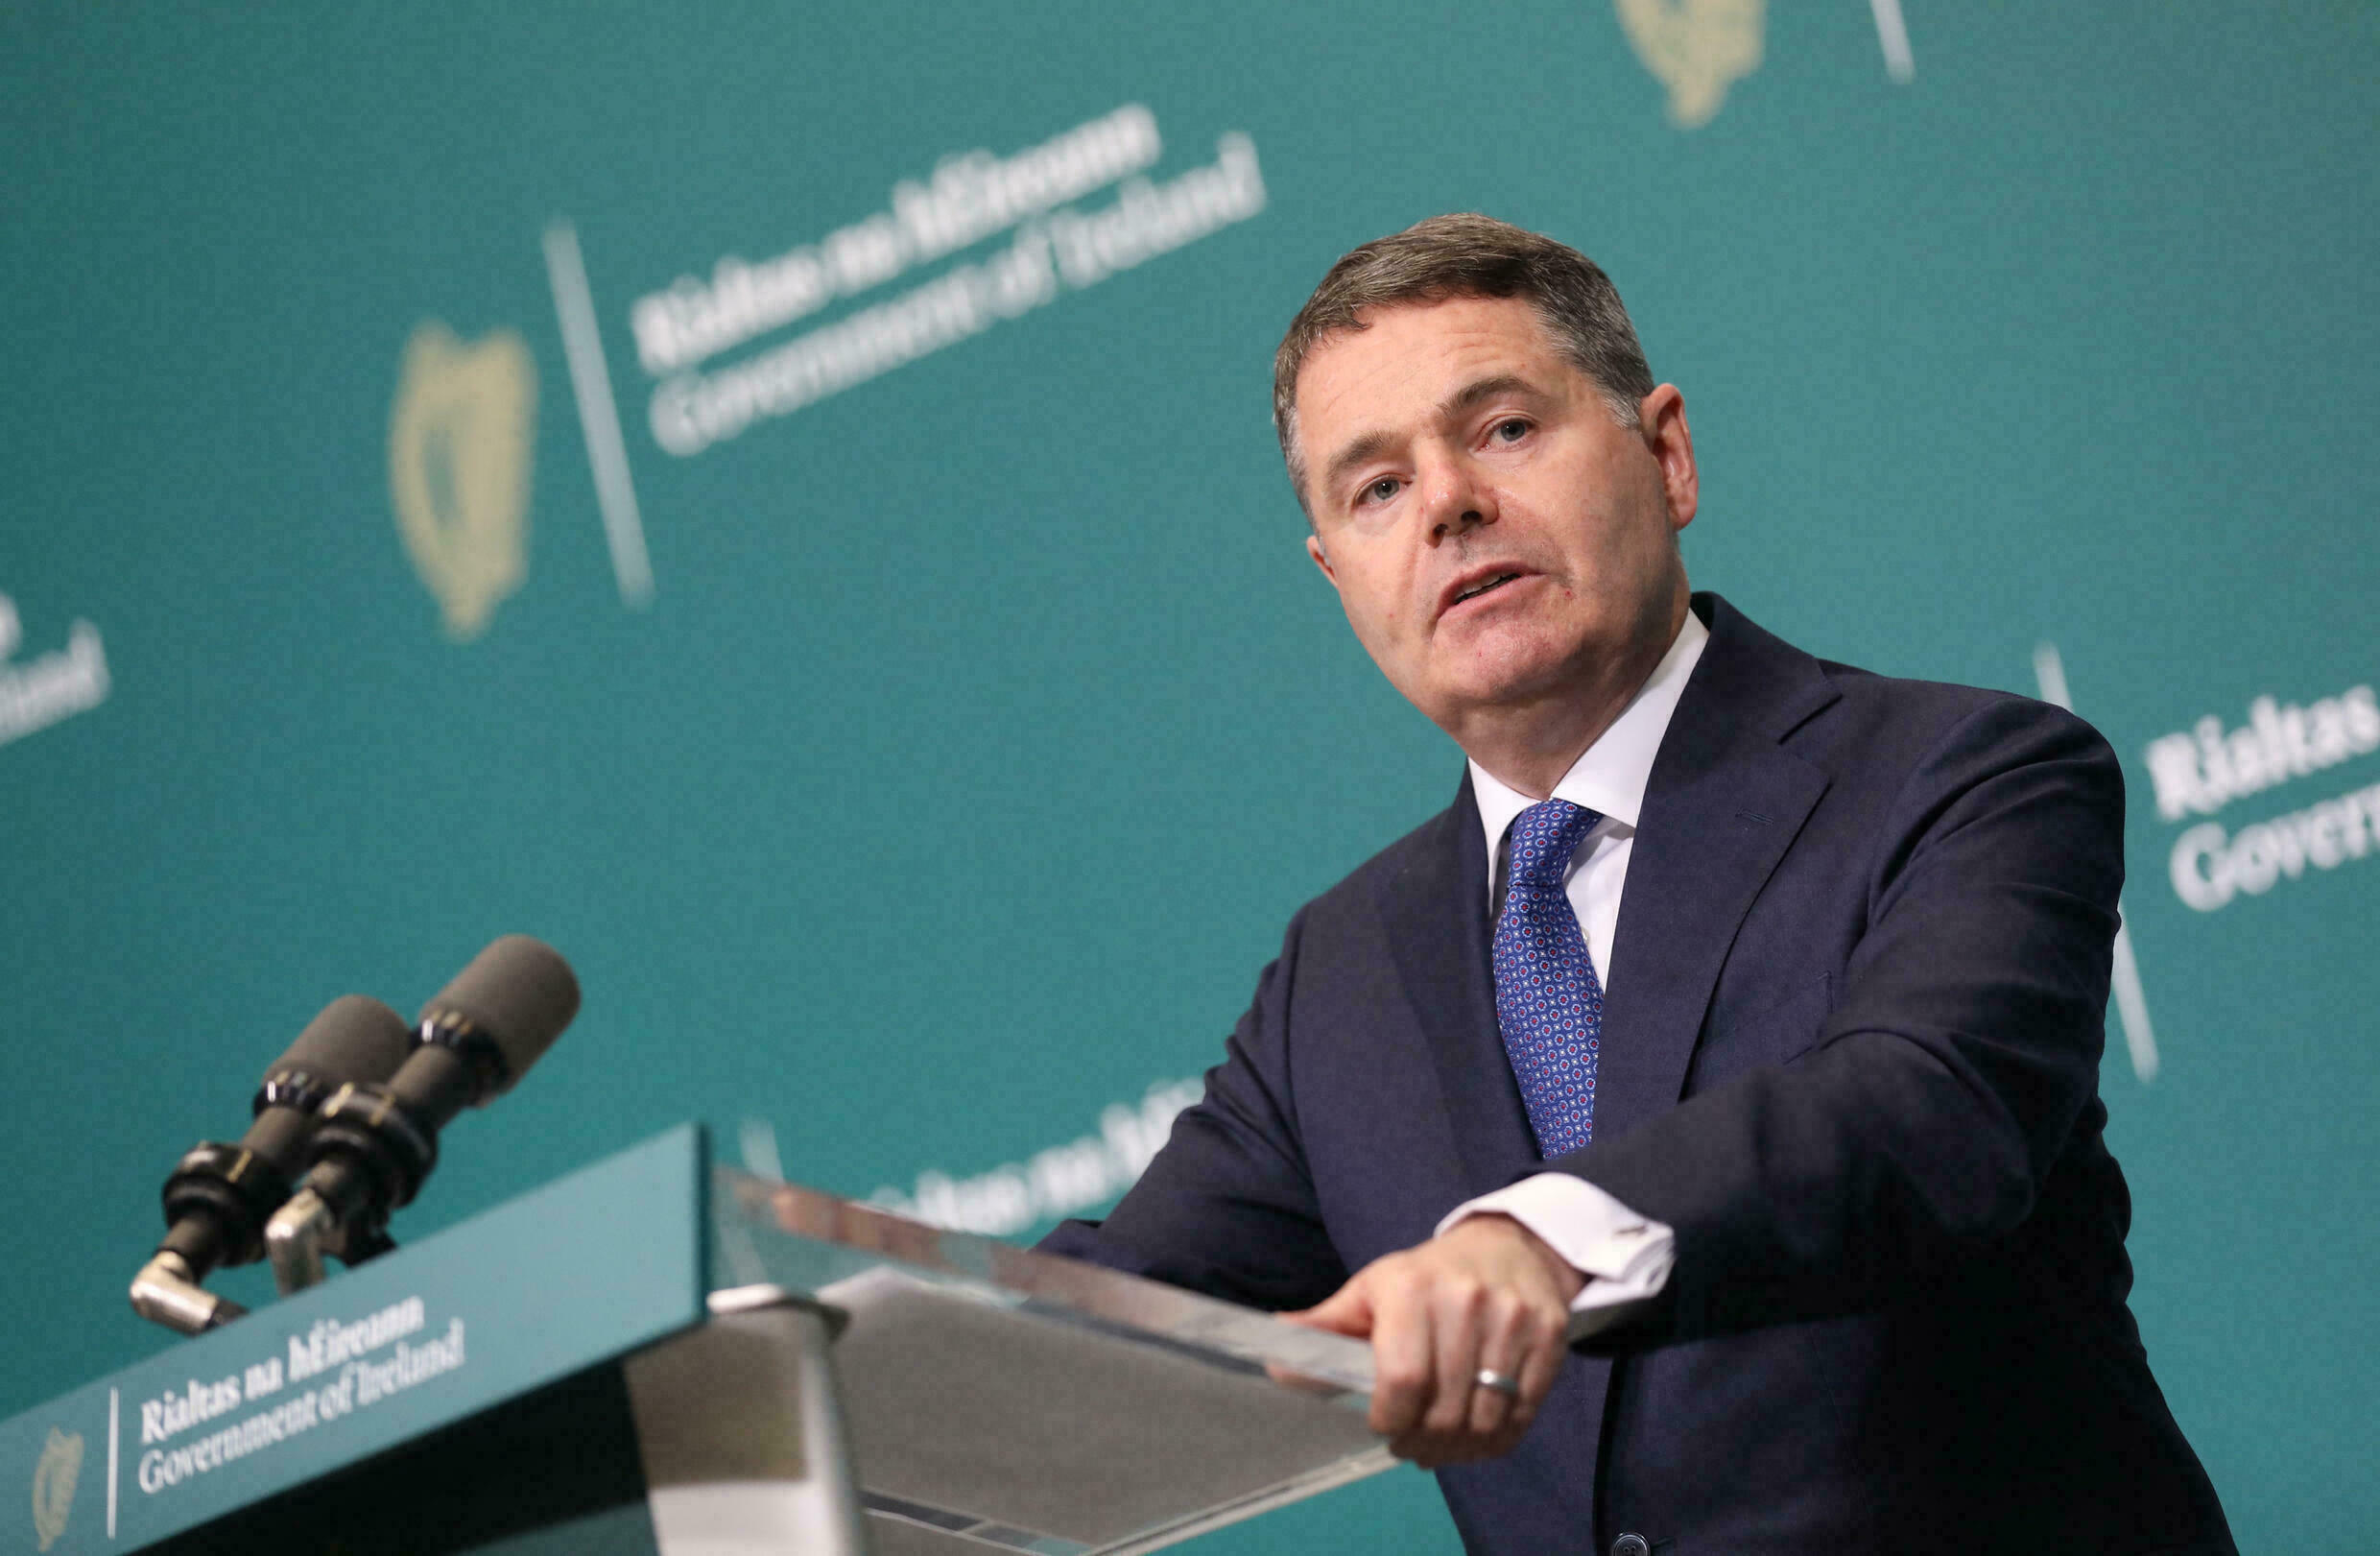 Irish Finance Minister Pascal Donohoe at a press conference in Dublin on October 7, 2021